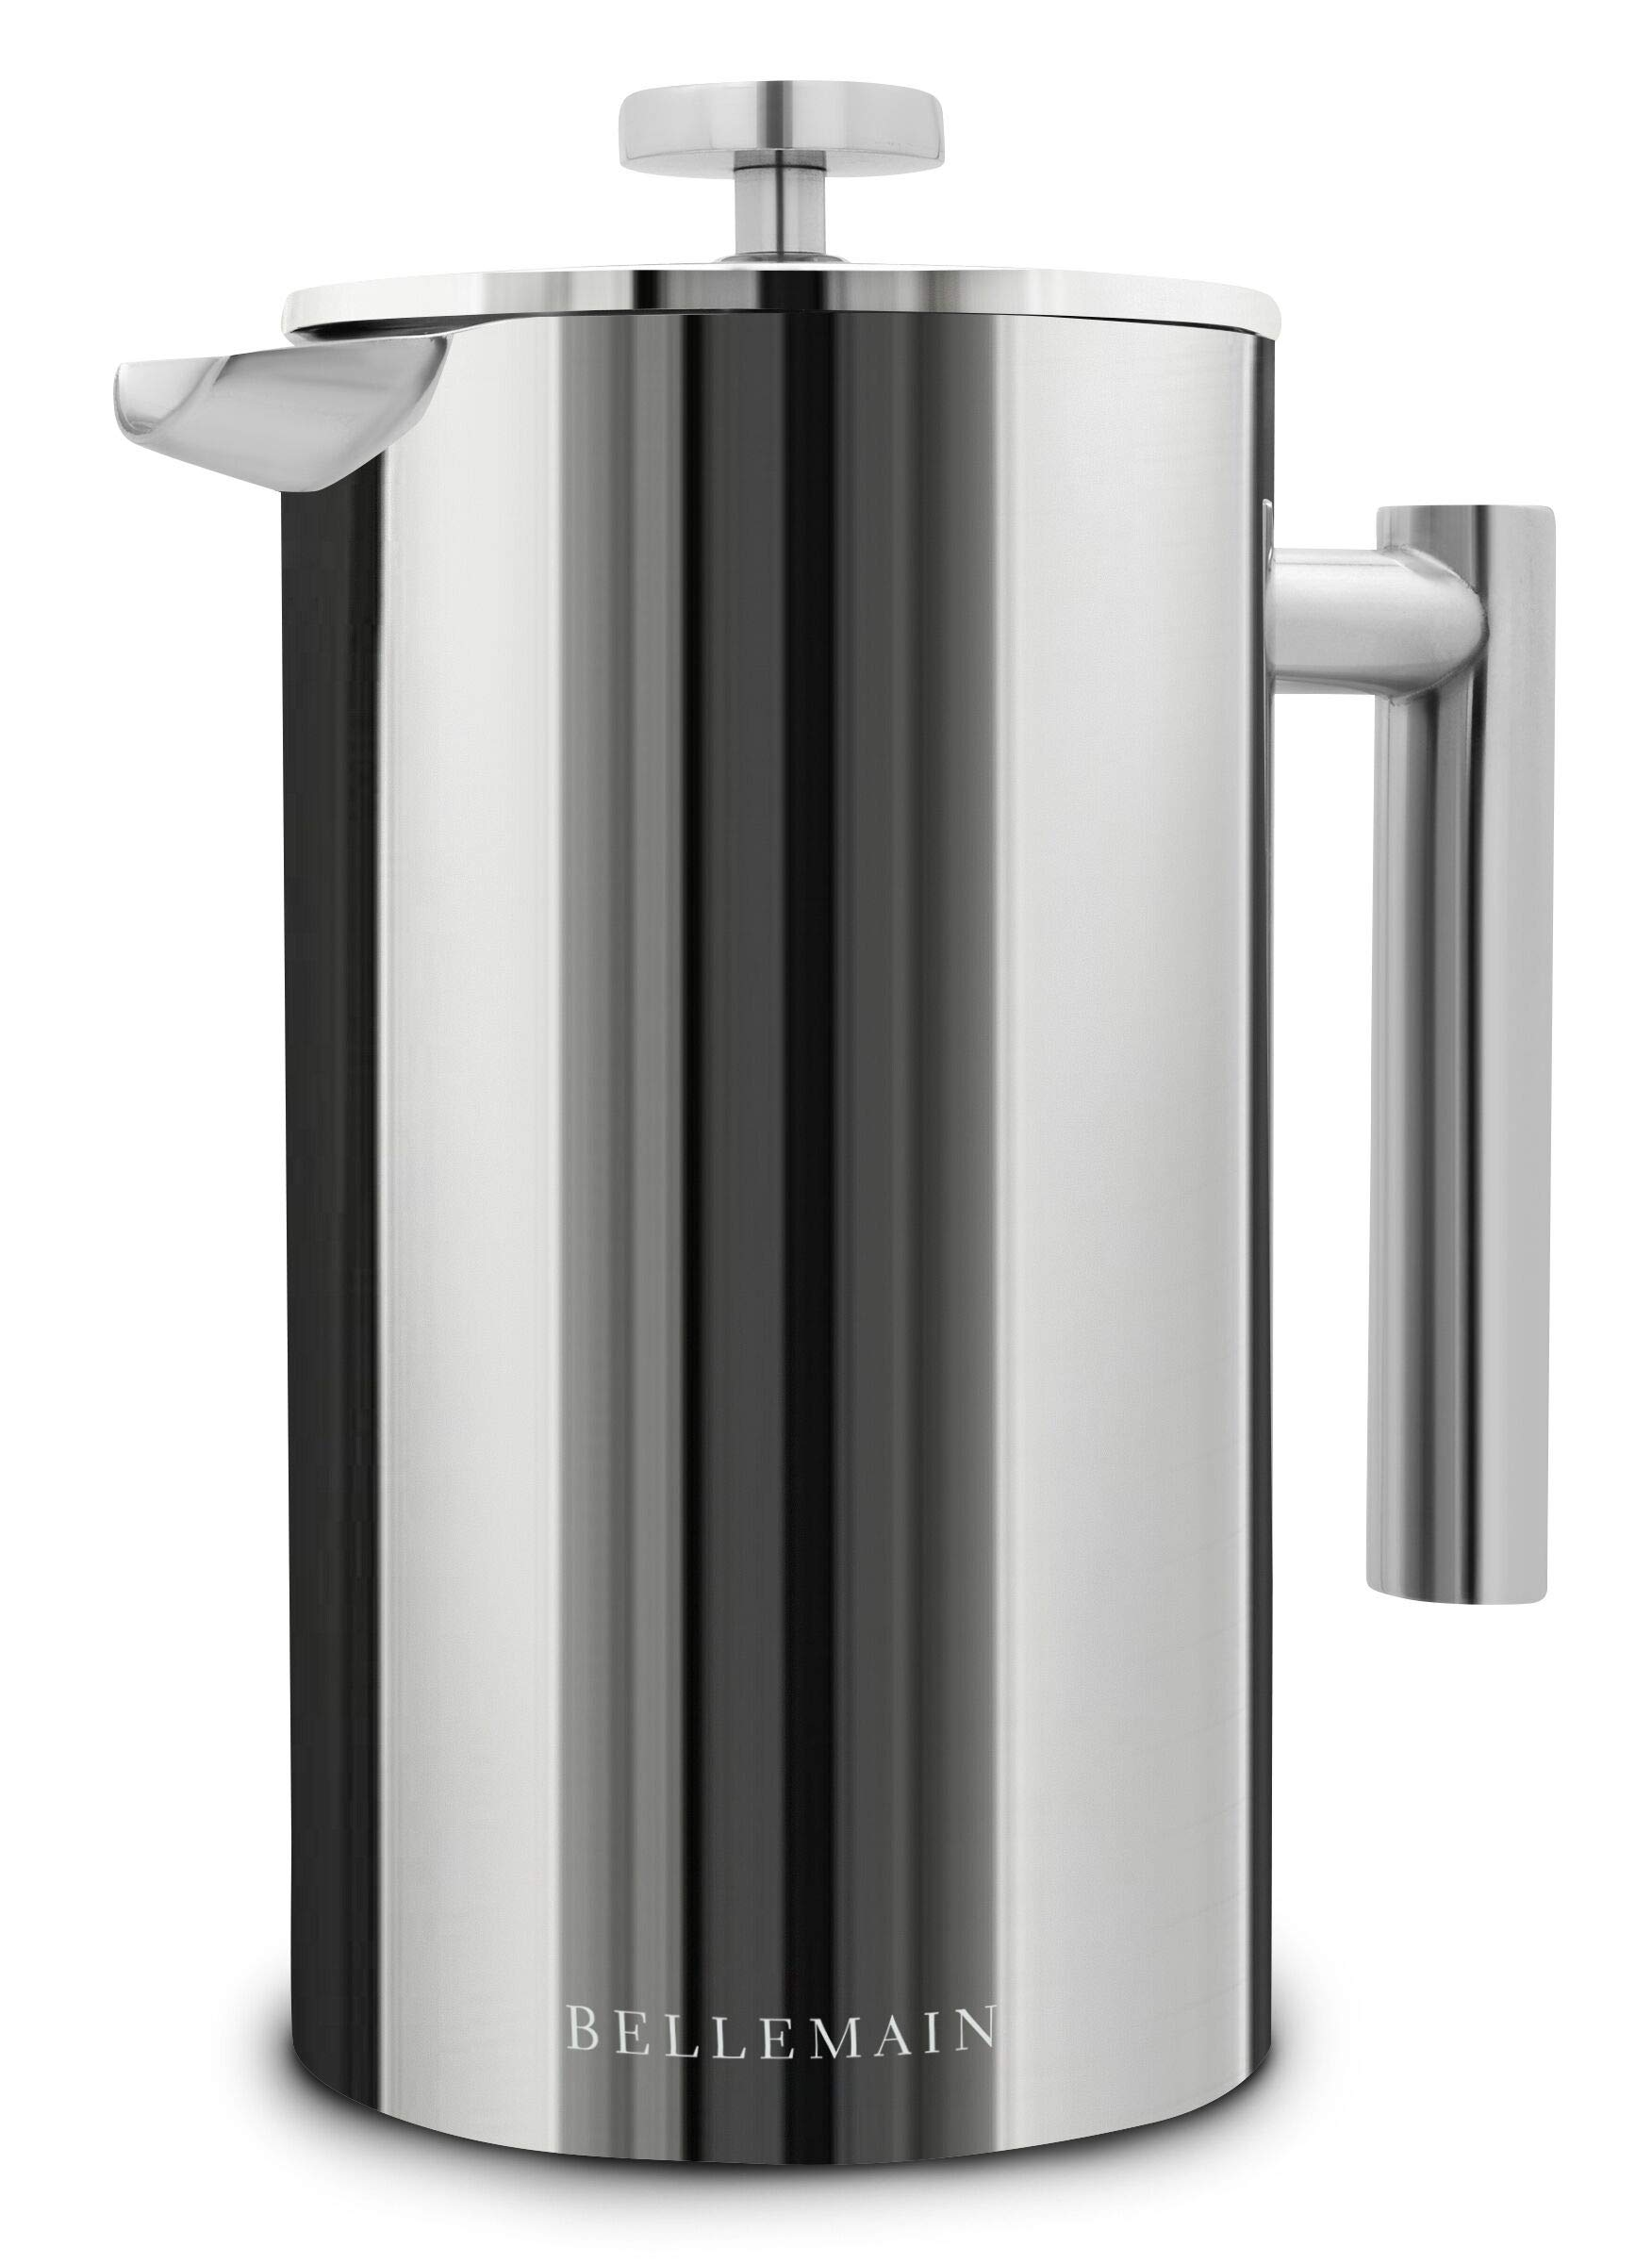 Bellemain French Press - Extra Filters Included - Coffee and Tea Maker - Stainless Steel - 35 fl. oz ( 1 Liter). - 2-Year Warranty by Bellemain